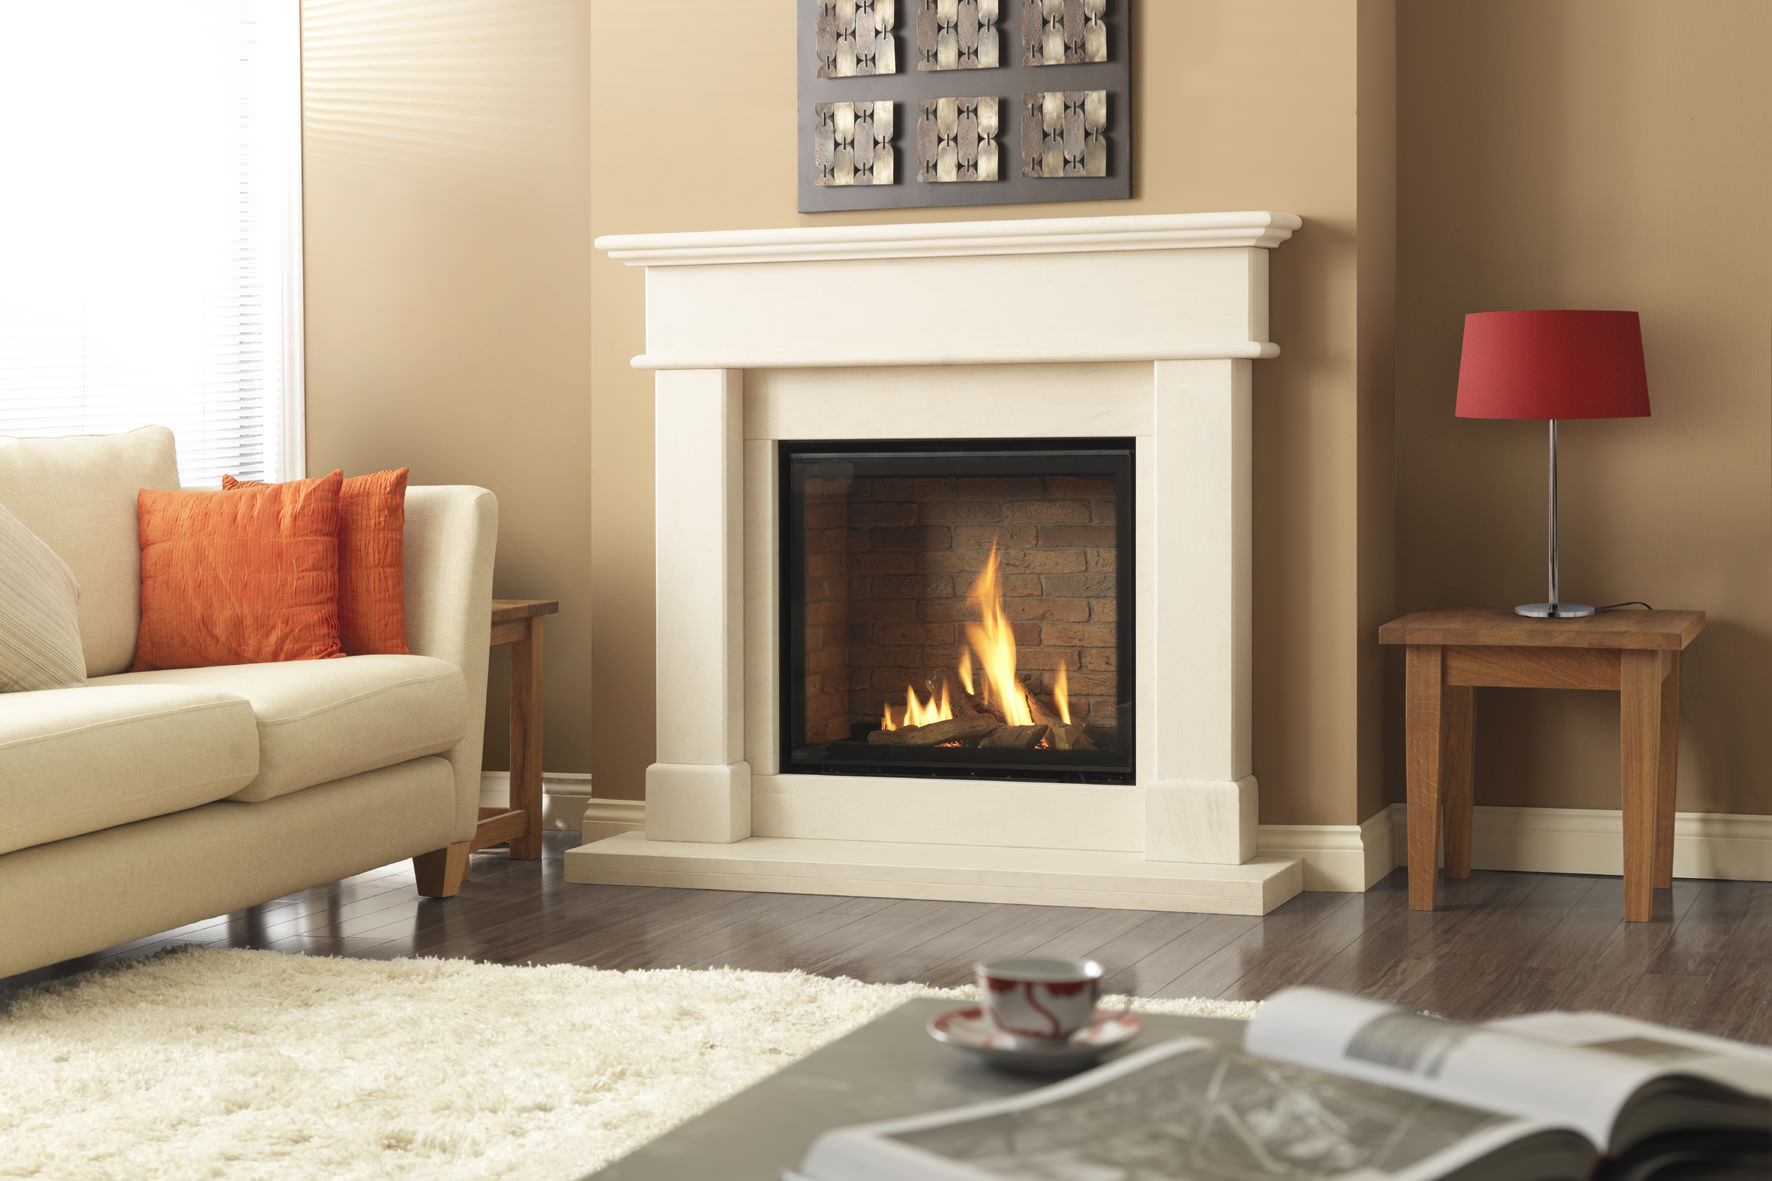 Discover all the information about the product Gas fireplace / contemporary / closed hearth / built-in GLOBAL 70XT CF - DRU and find where you can buy it. Contact the manufacturer directly to receive a quote.